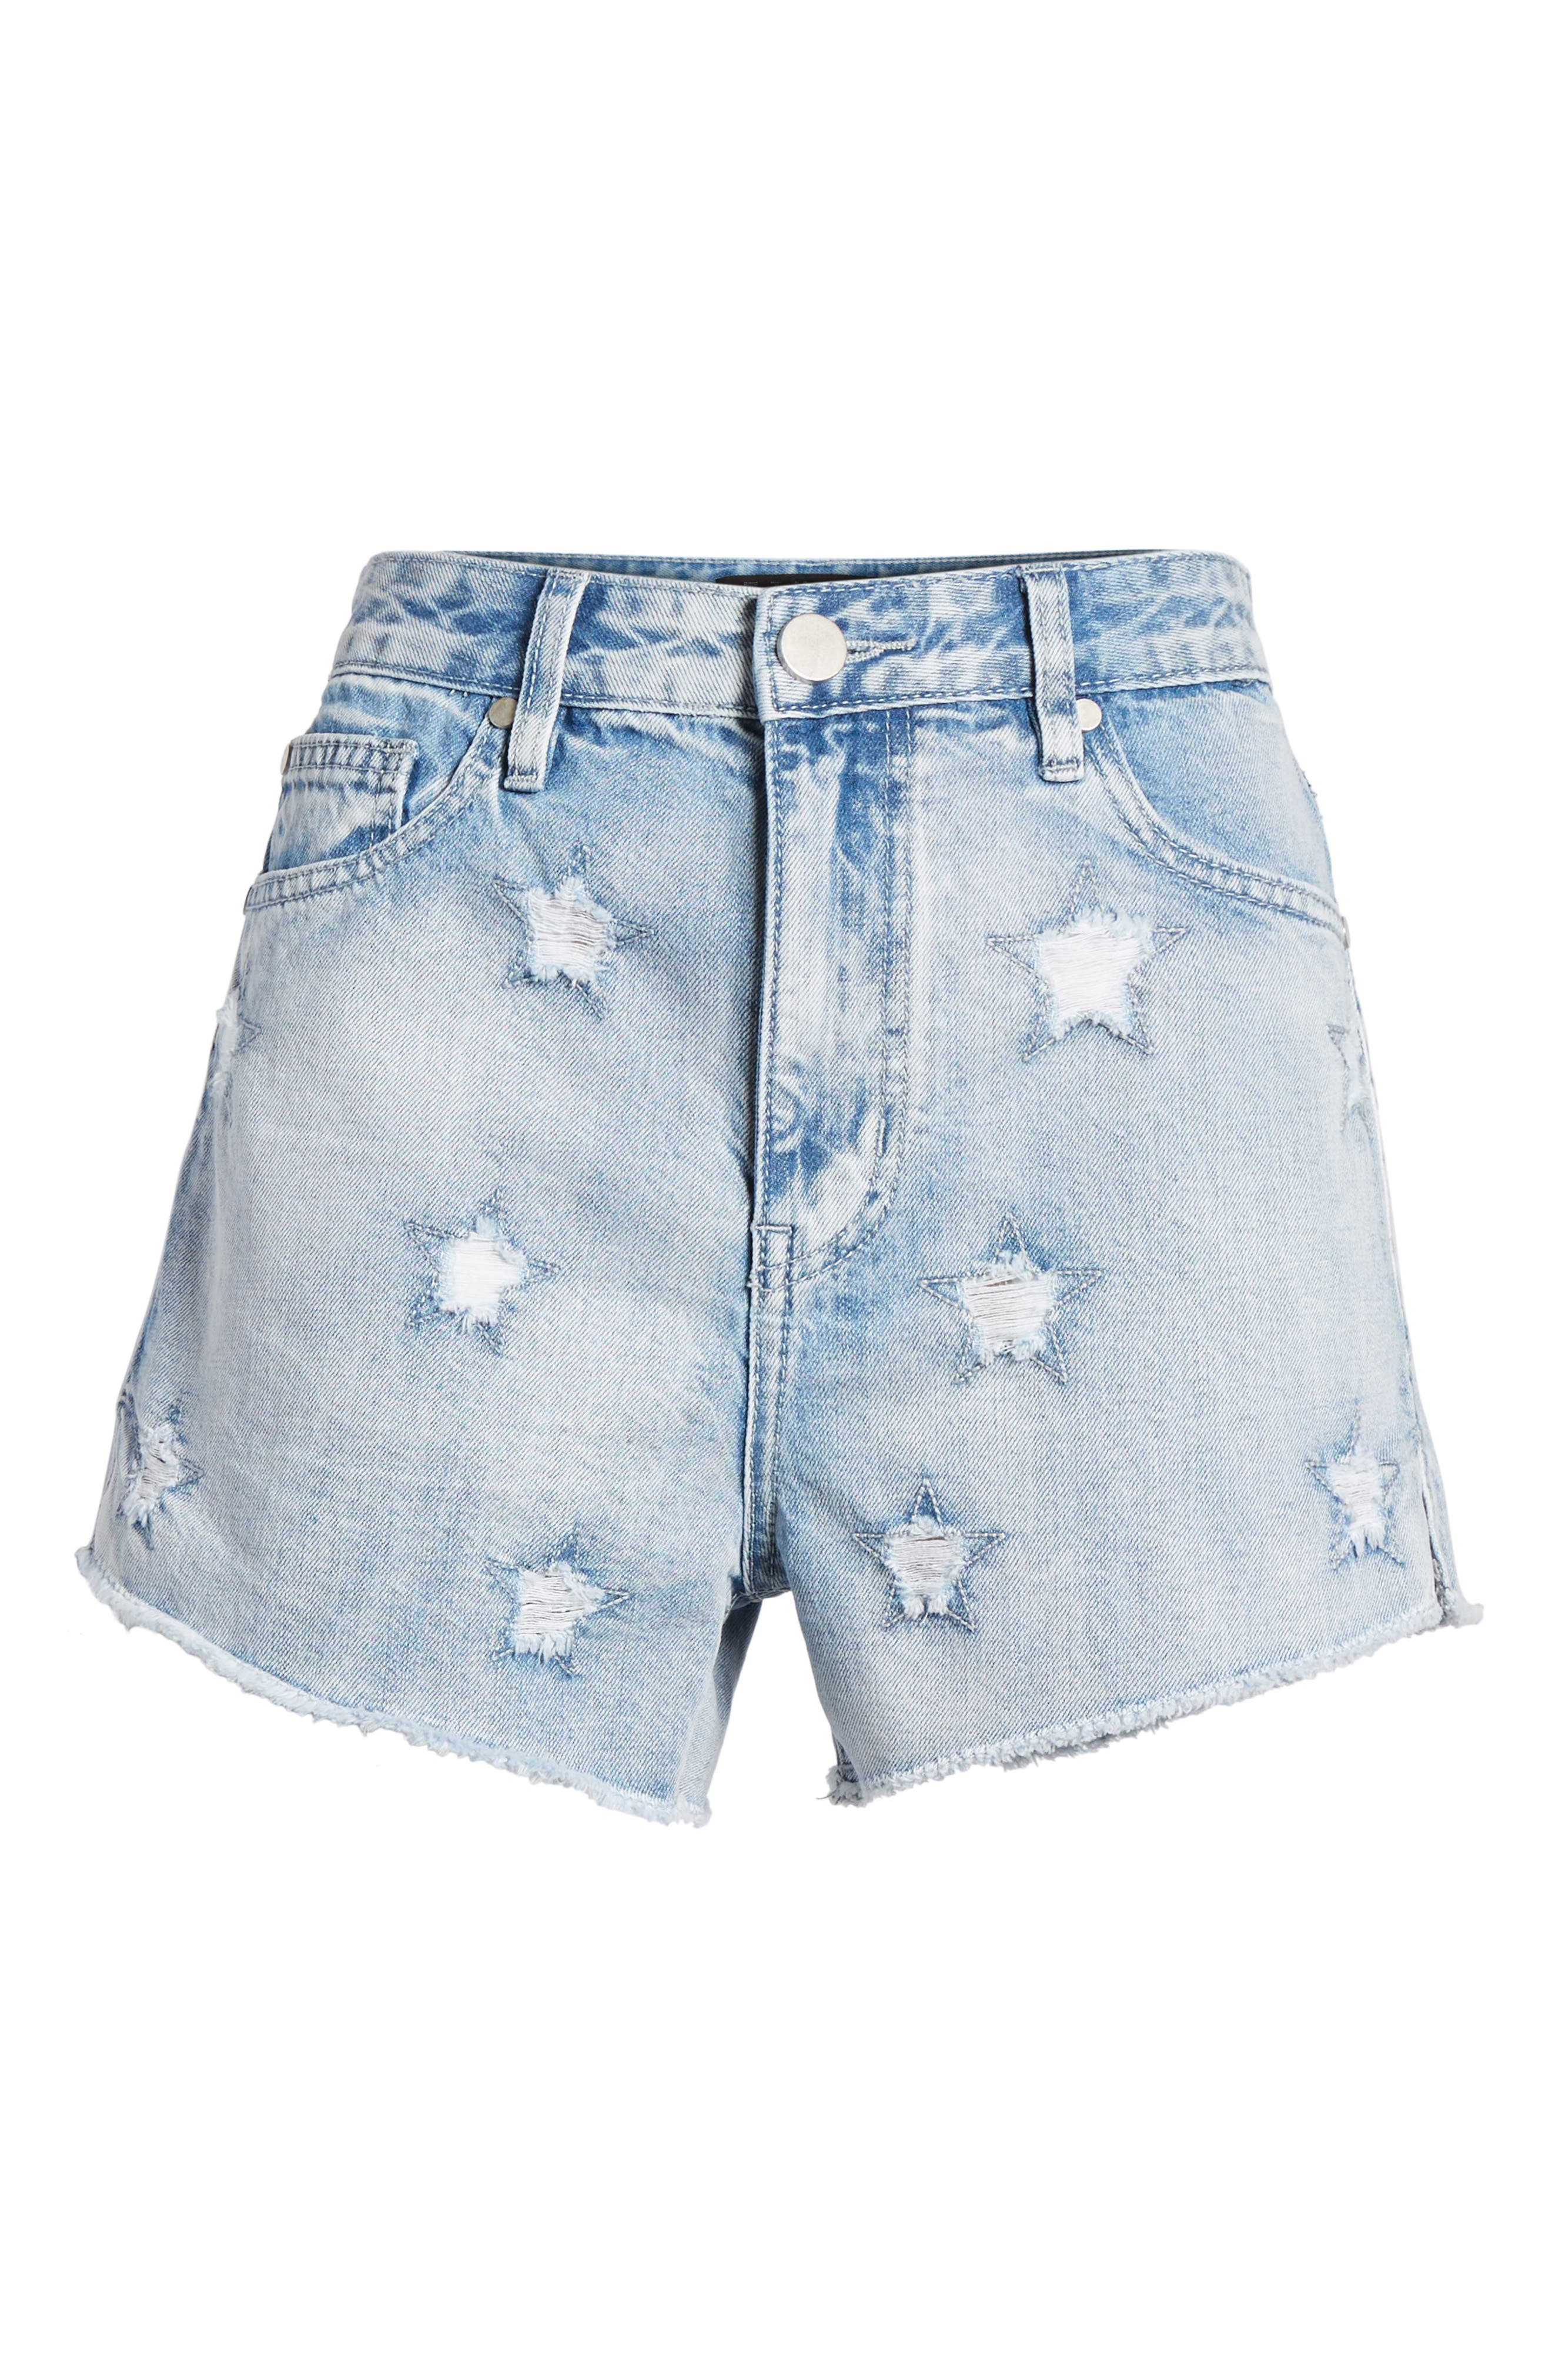 Acid Wash Star Denim Shorts,                             Alternate thumbnail 7, color,                             400